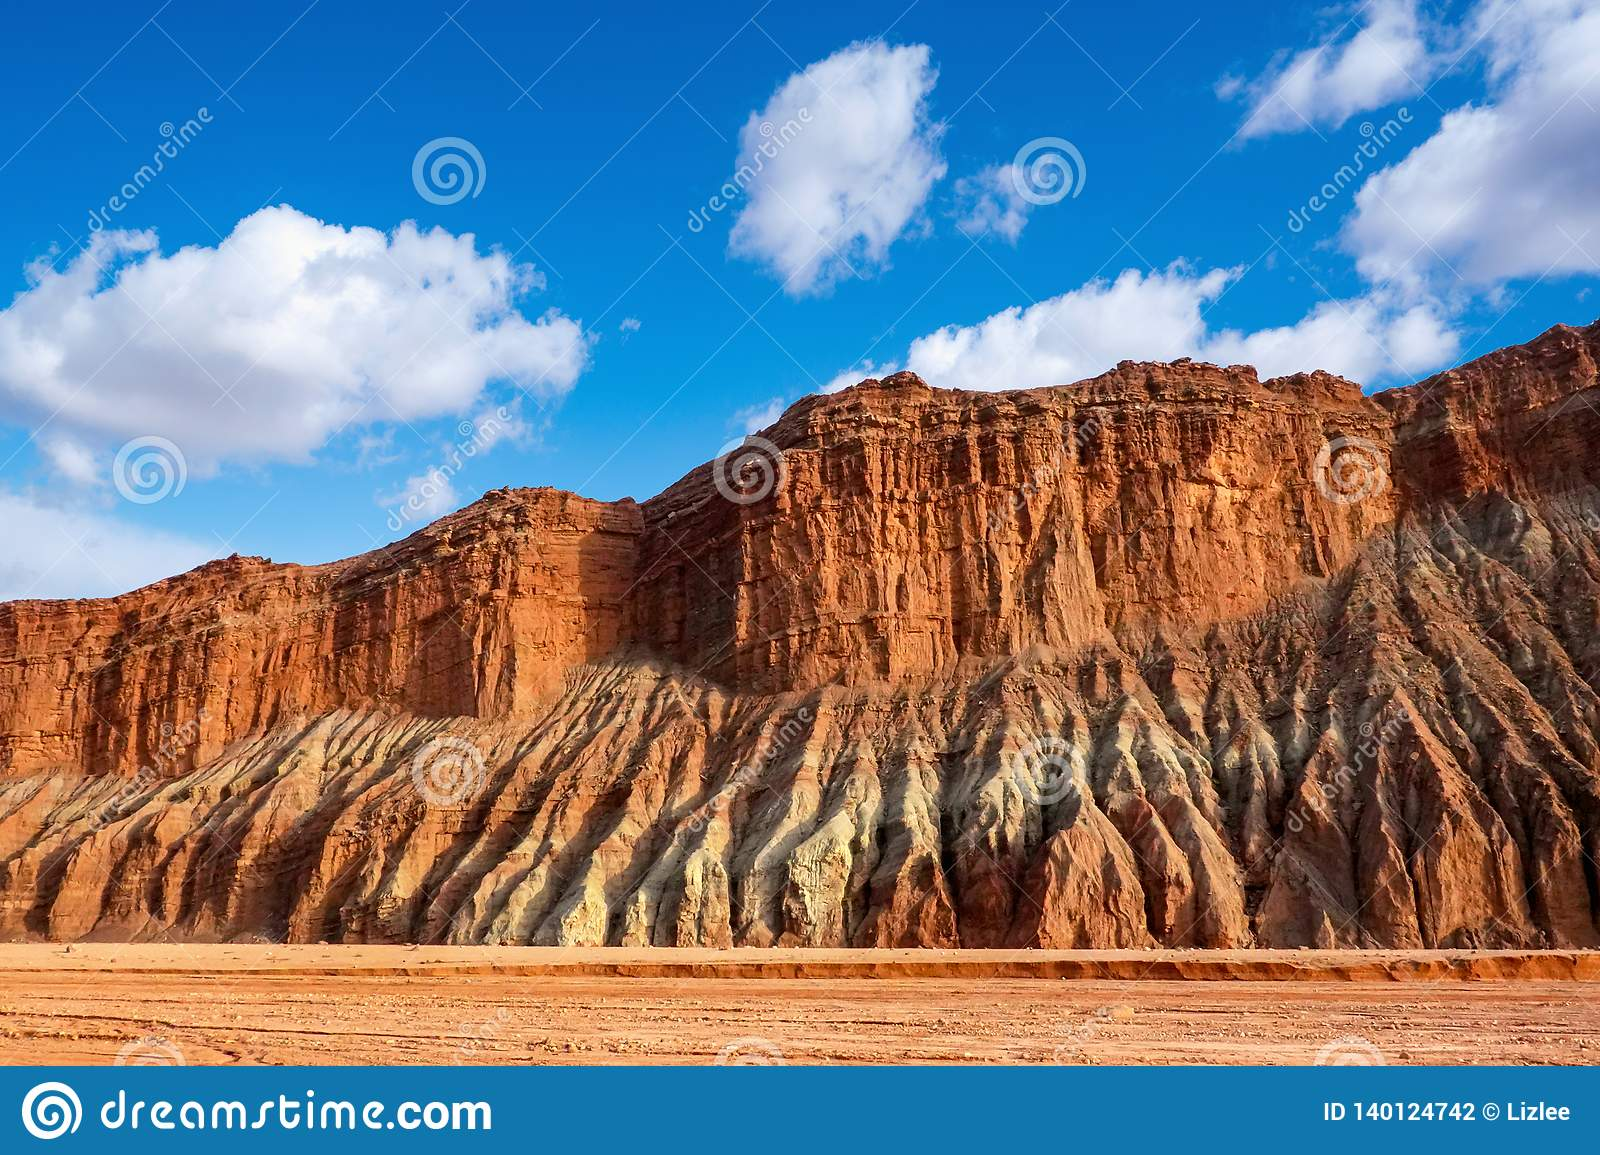 Blue sky white clouds and colorful Wensu Grand Canyon in Autumn